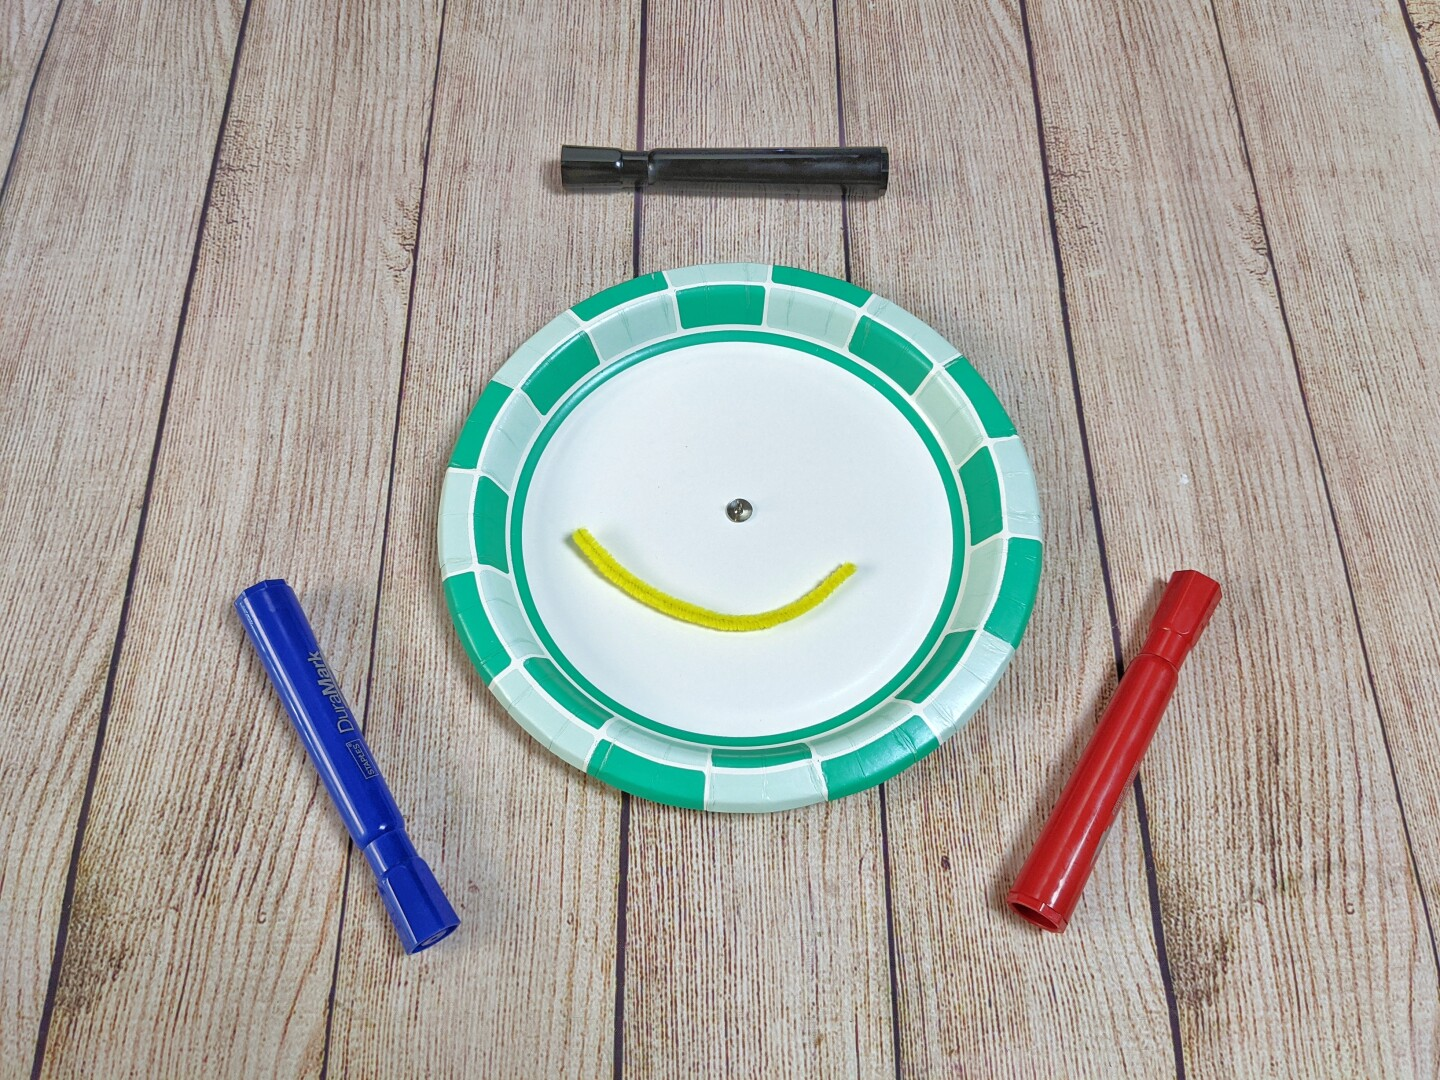 All you need for the spinner is a paper plate, a round head fastener, a pipe cleaner and a marker.